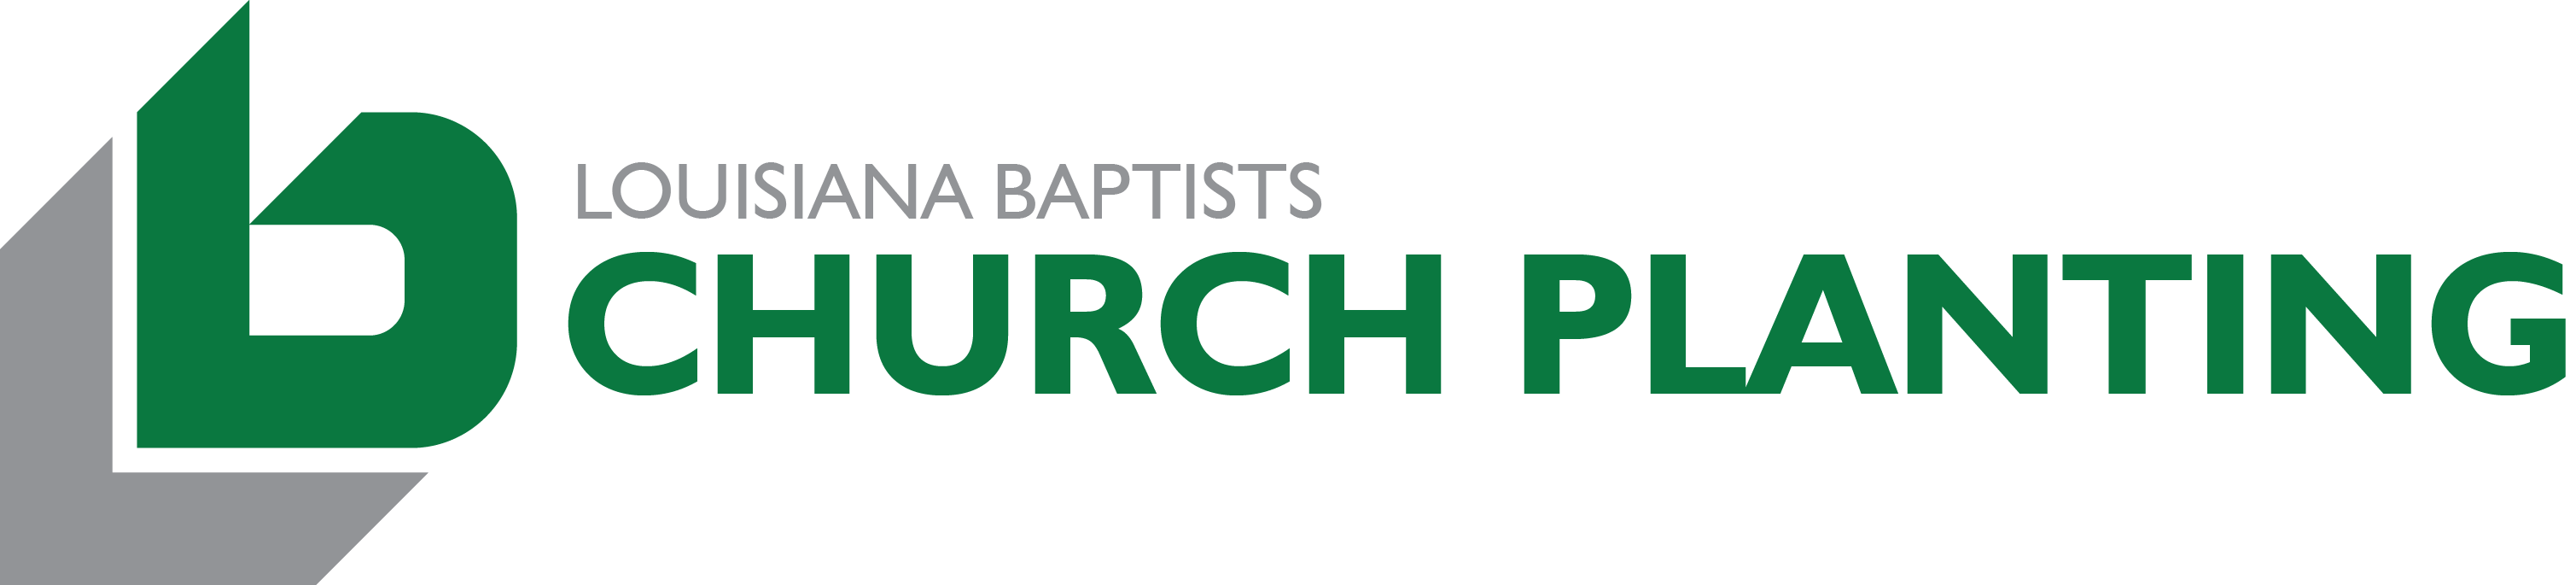 lb_church_planting_spu.png